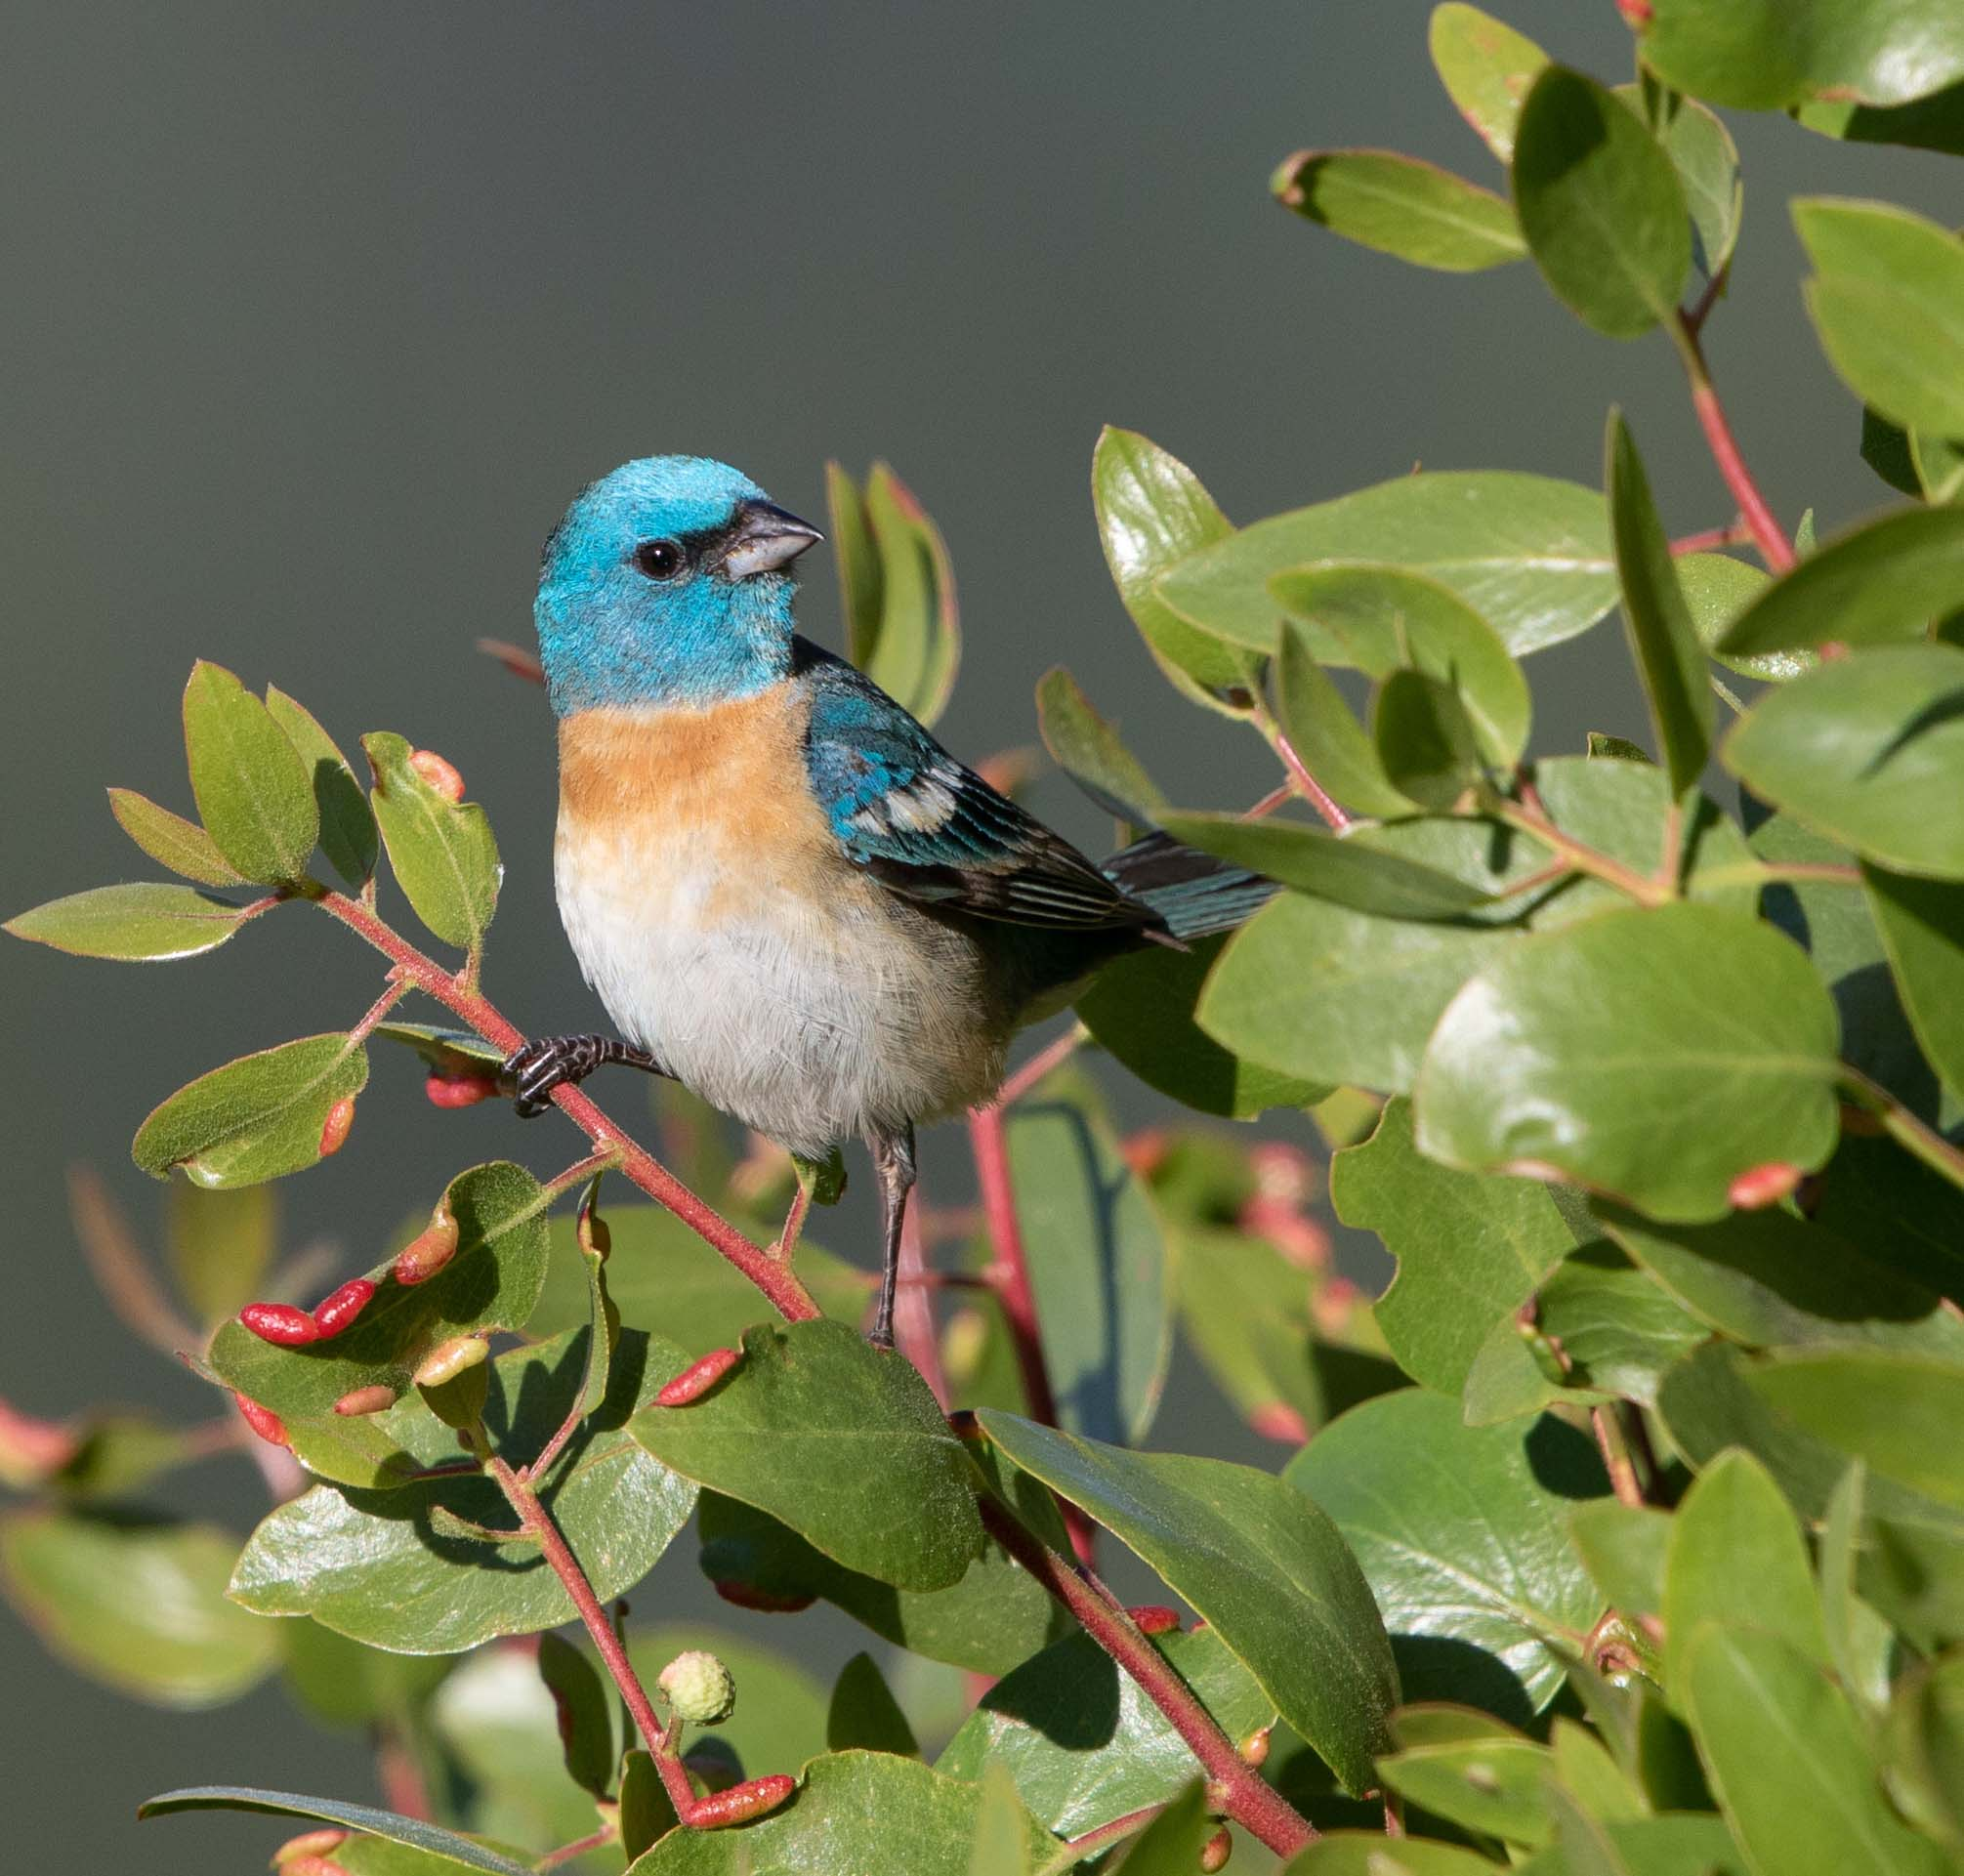 A Century of Changing Birdlife in the Central Valley